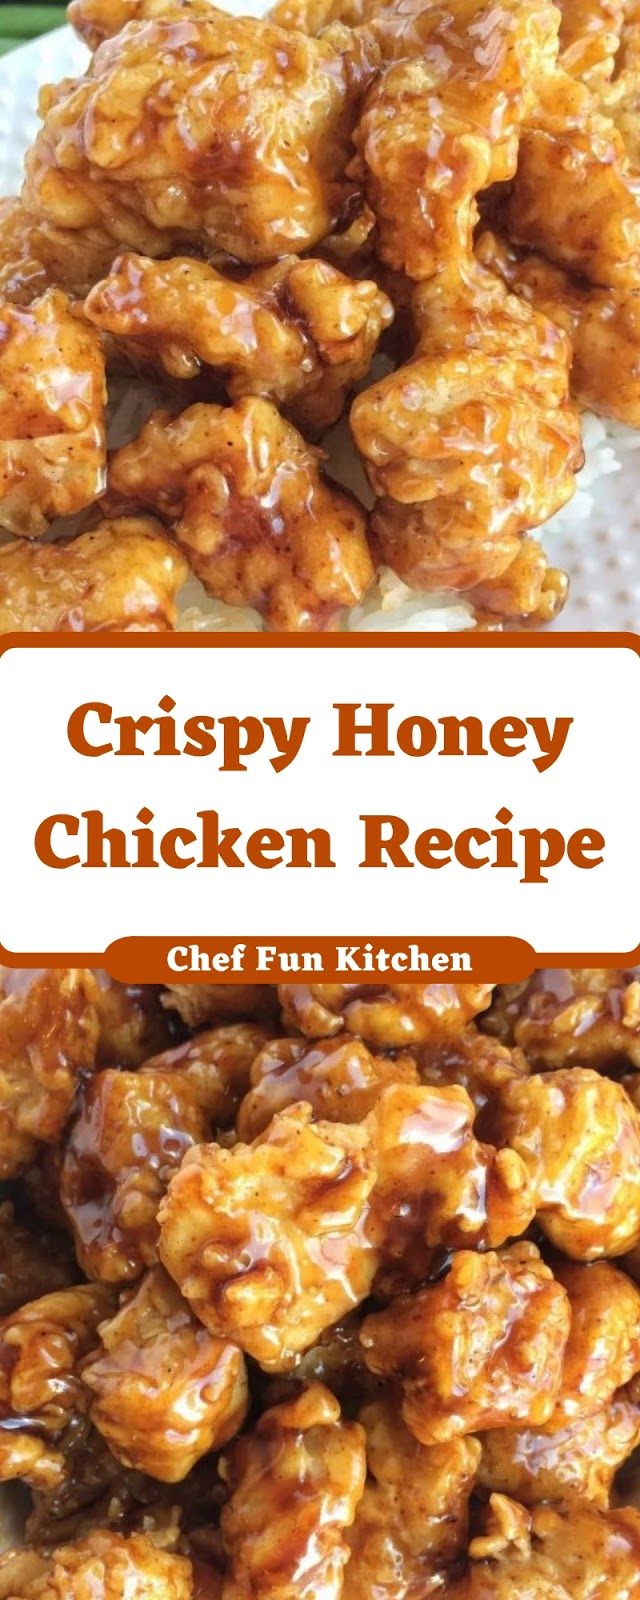 Crispy Honey Chicken Recipe